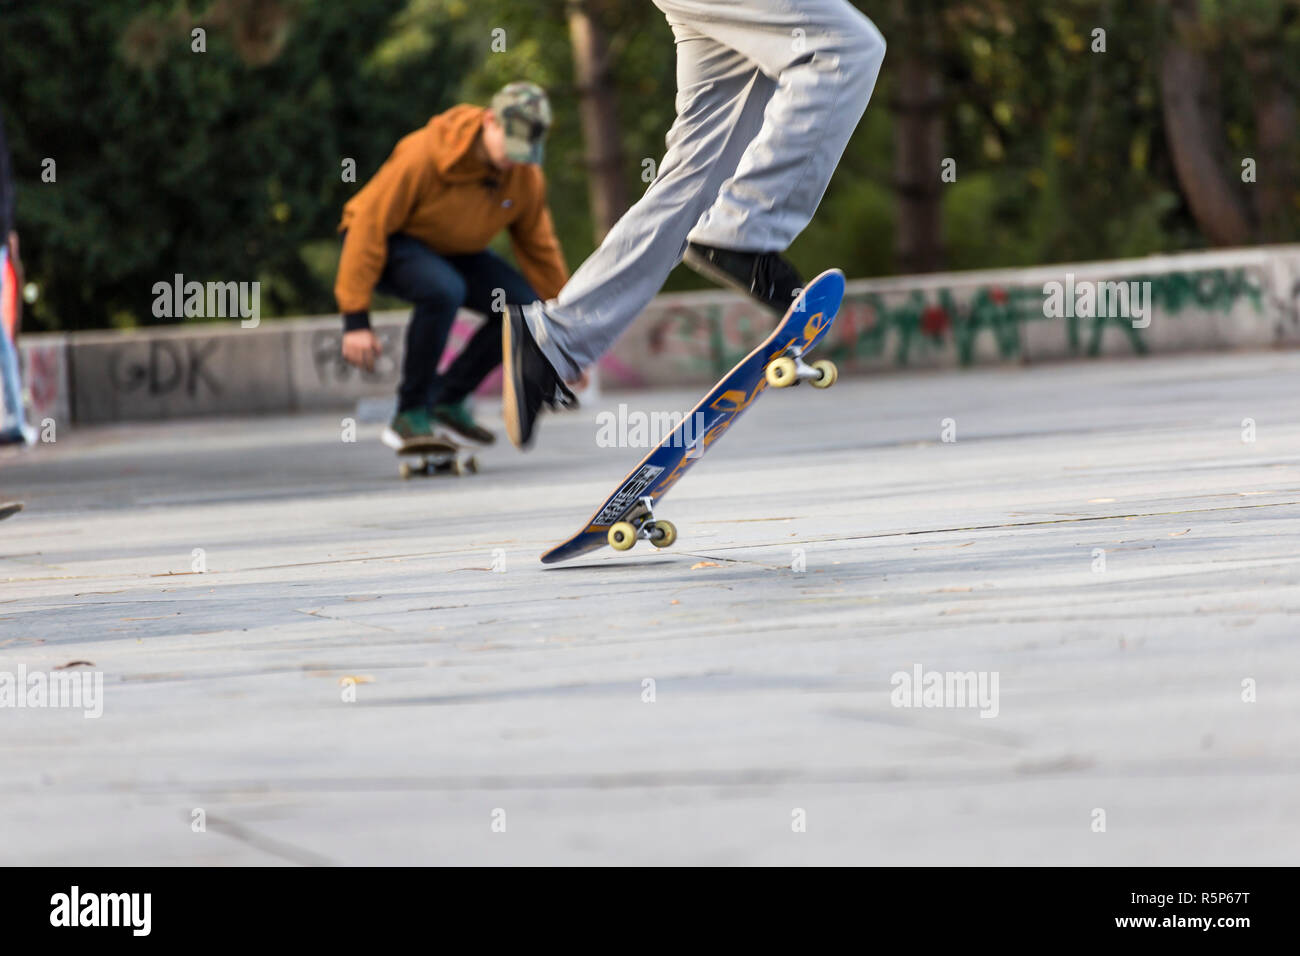 PRAGUE, CZECH REPUBLIC - OCTOBER 12, 2017 - Low angle view of young people doing skateboard tricks in Letna Park in Prague, Czech Republic. Stock Photo